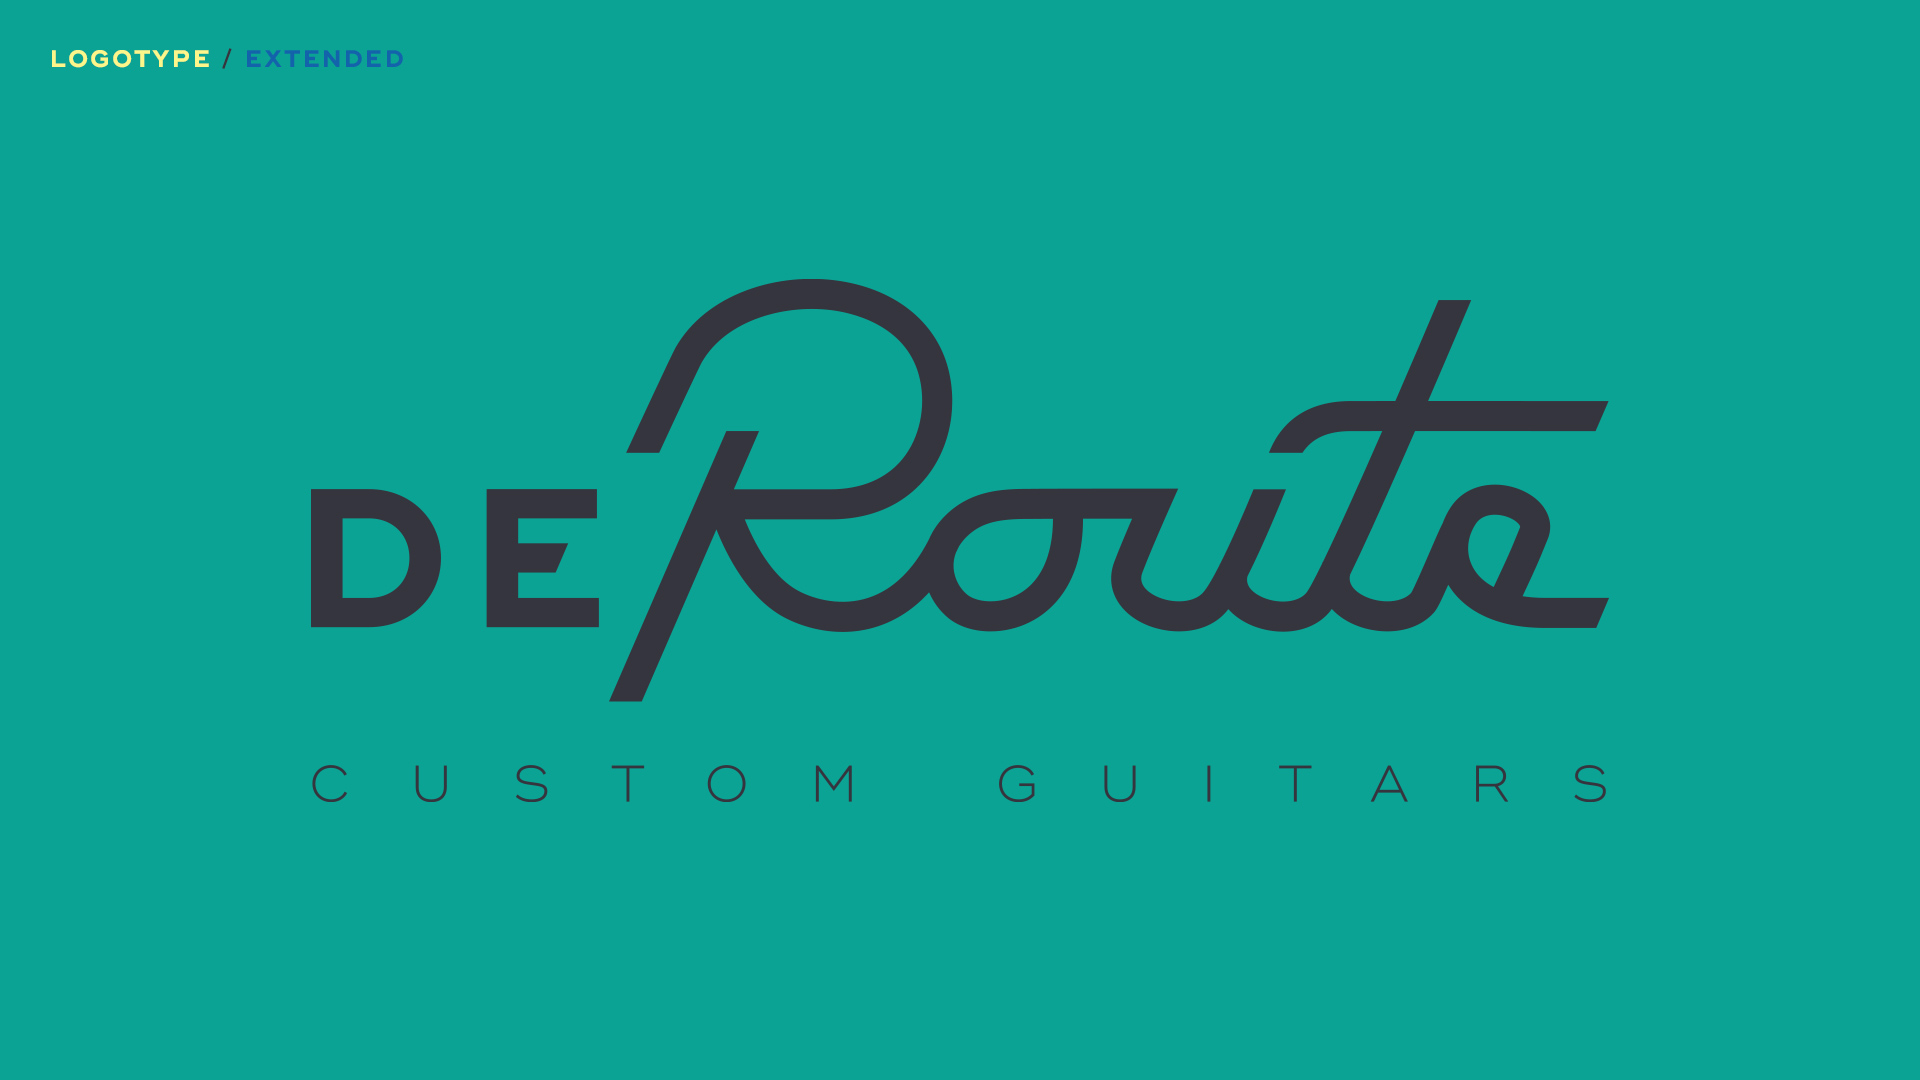 DeRoute-Visual-Identity-by-Emtisquare-5